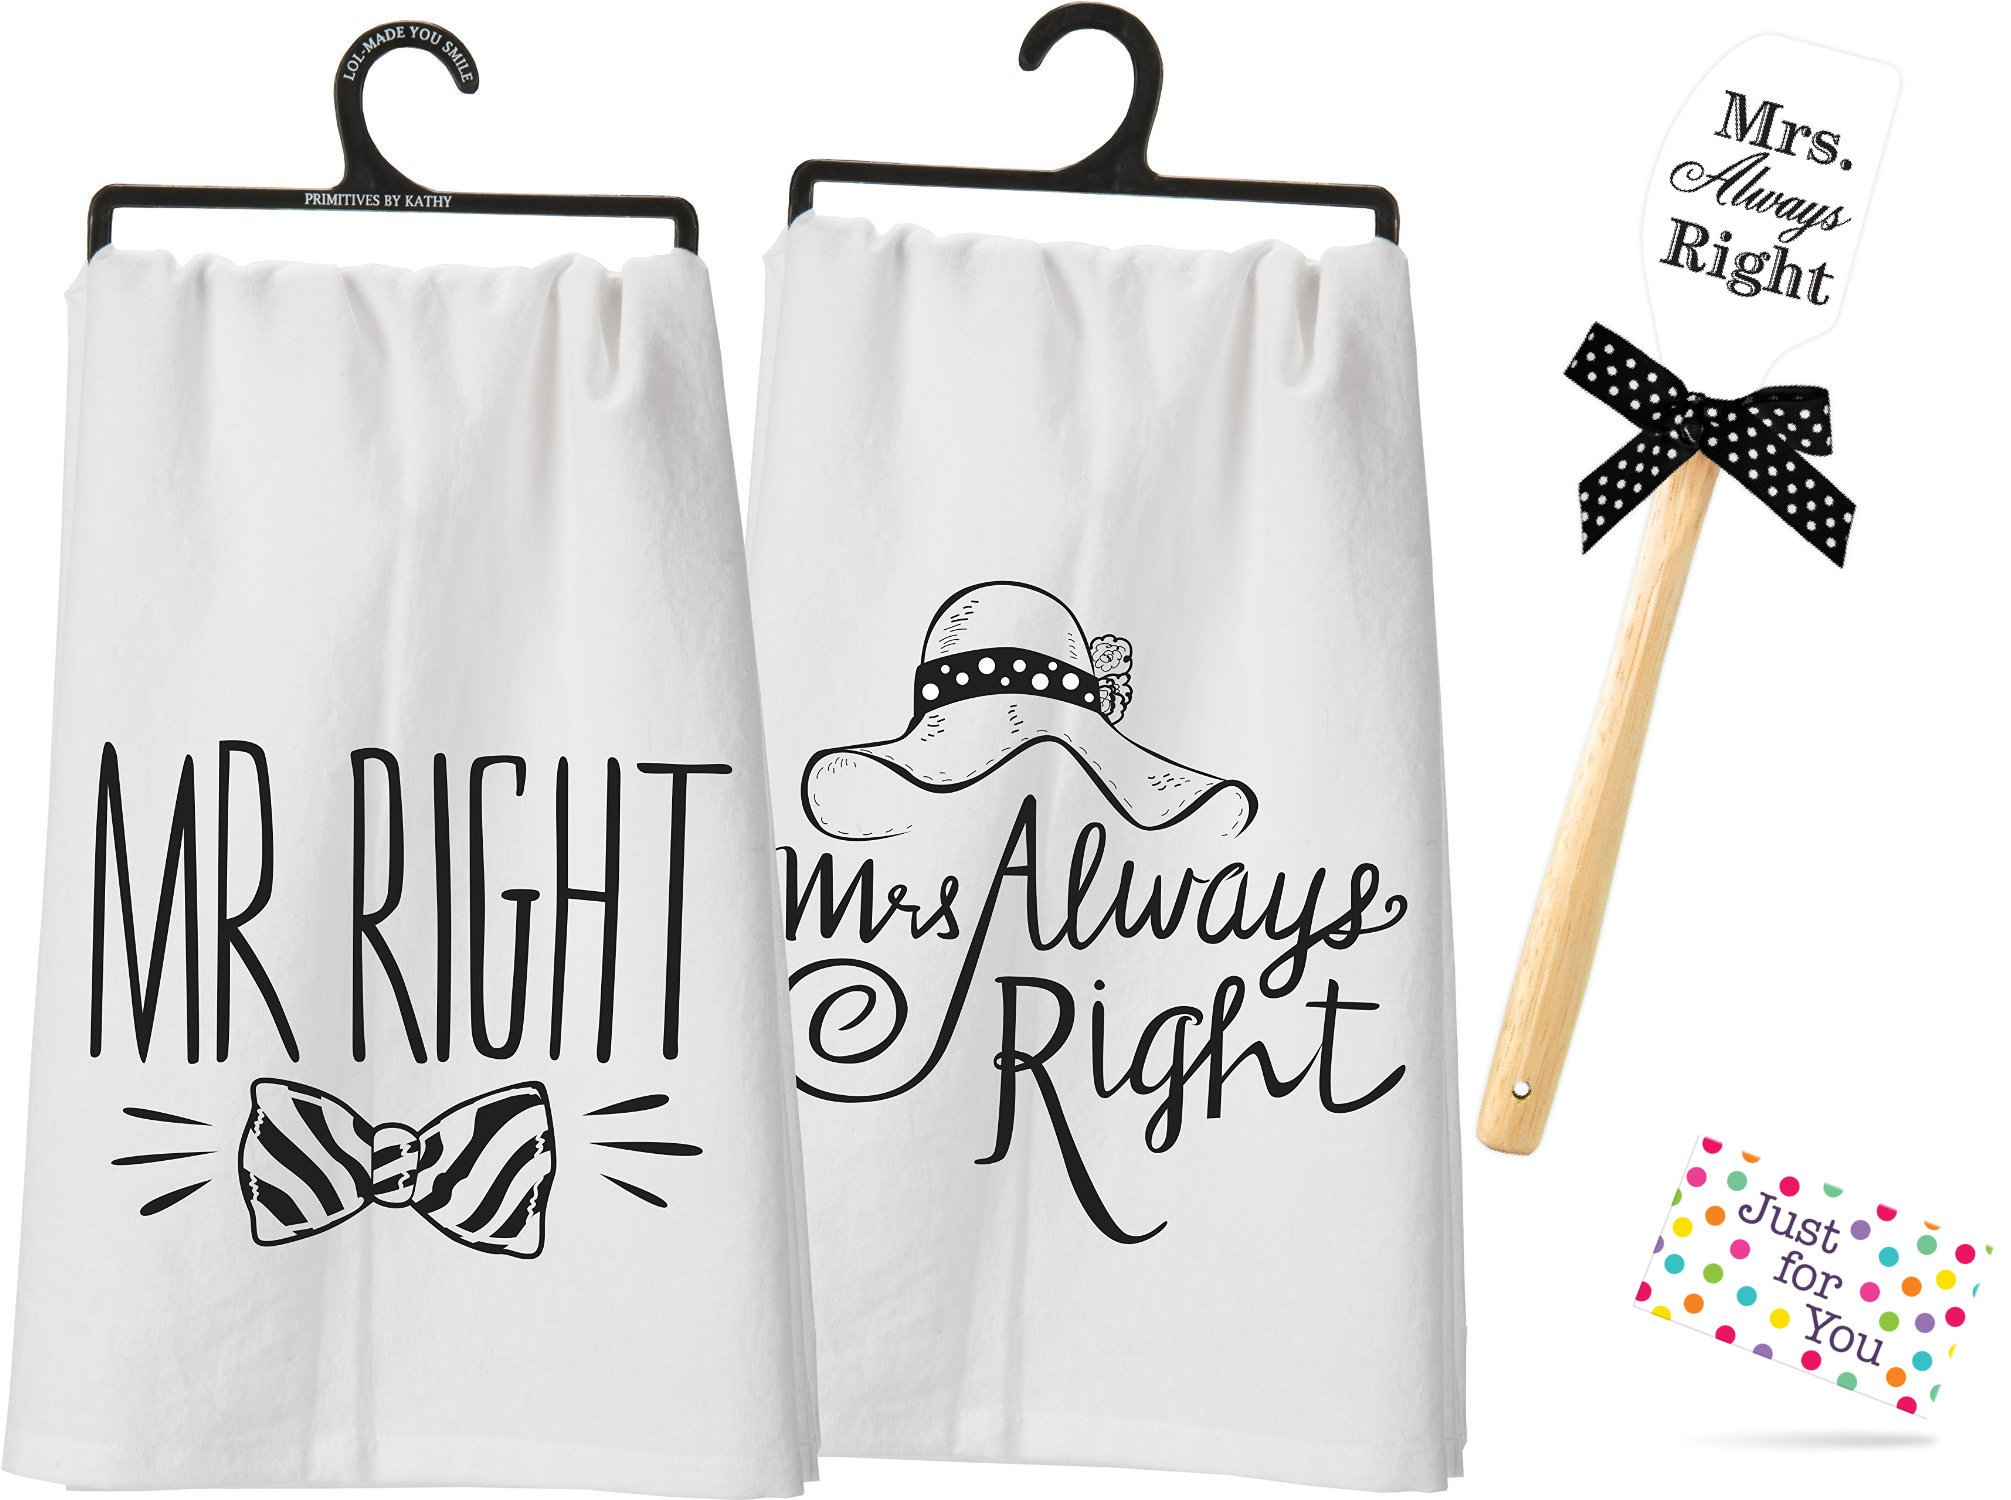 Mr Right and Mrs Always Right Kitchen Set - Two Towels and Spatula with Gift Tag